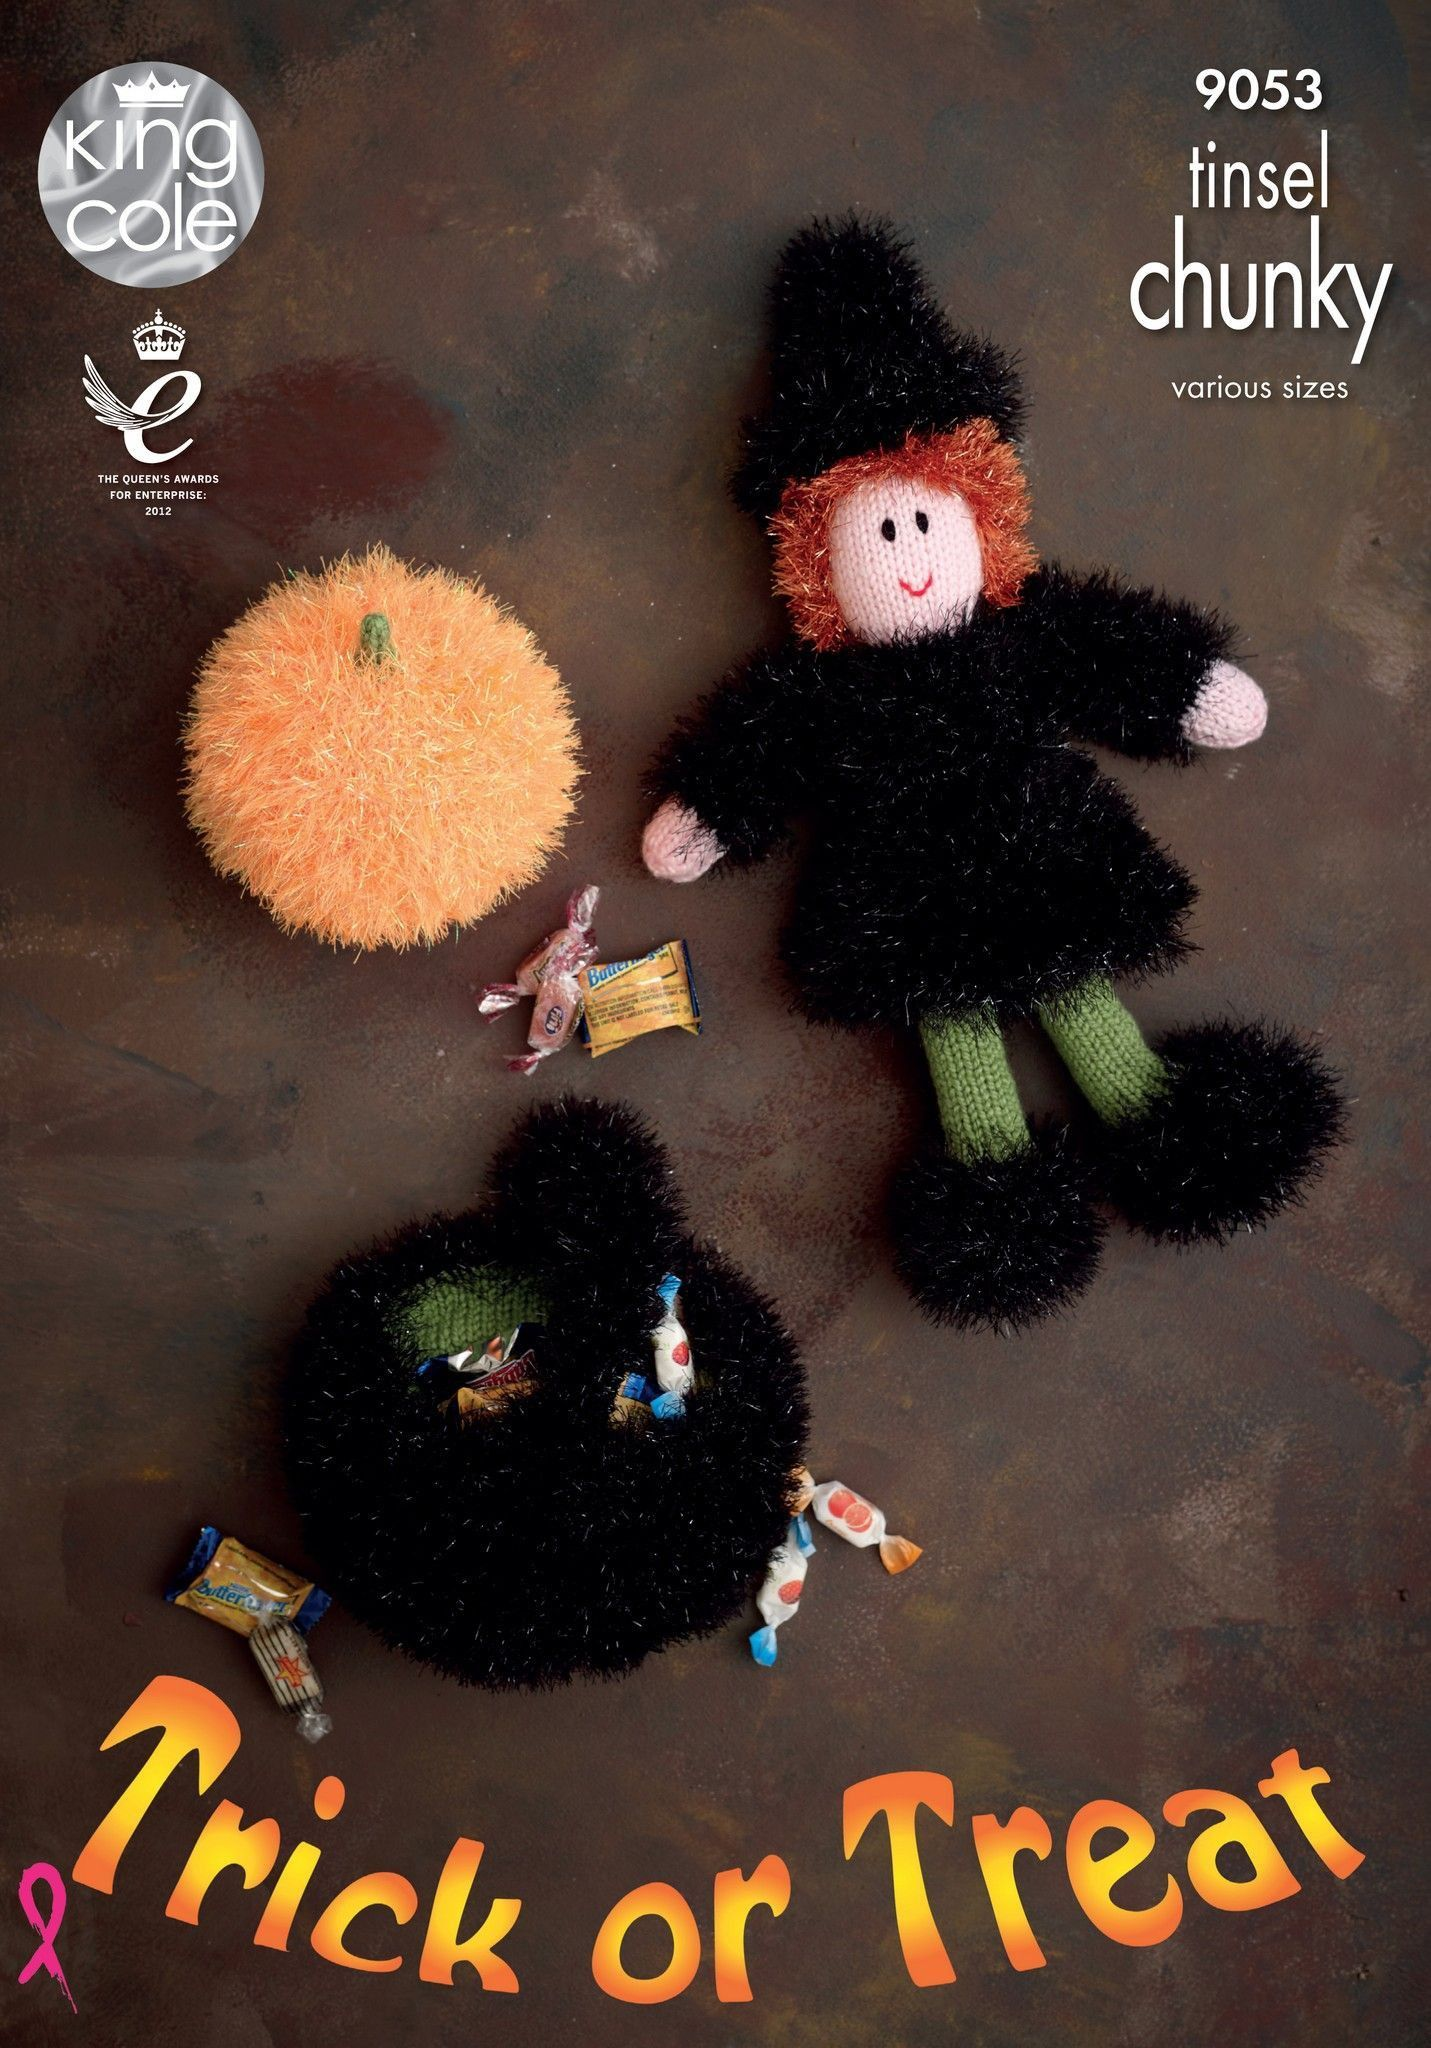 Halloween Characters in King Cole Tinsel Chunky